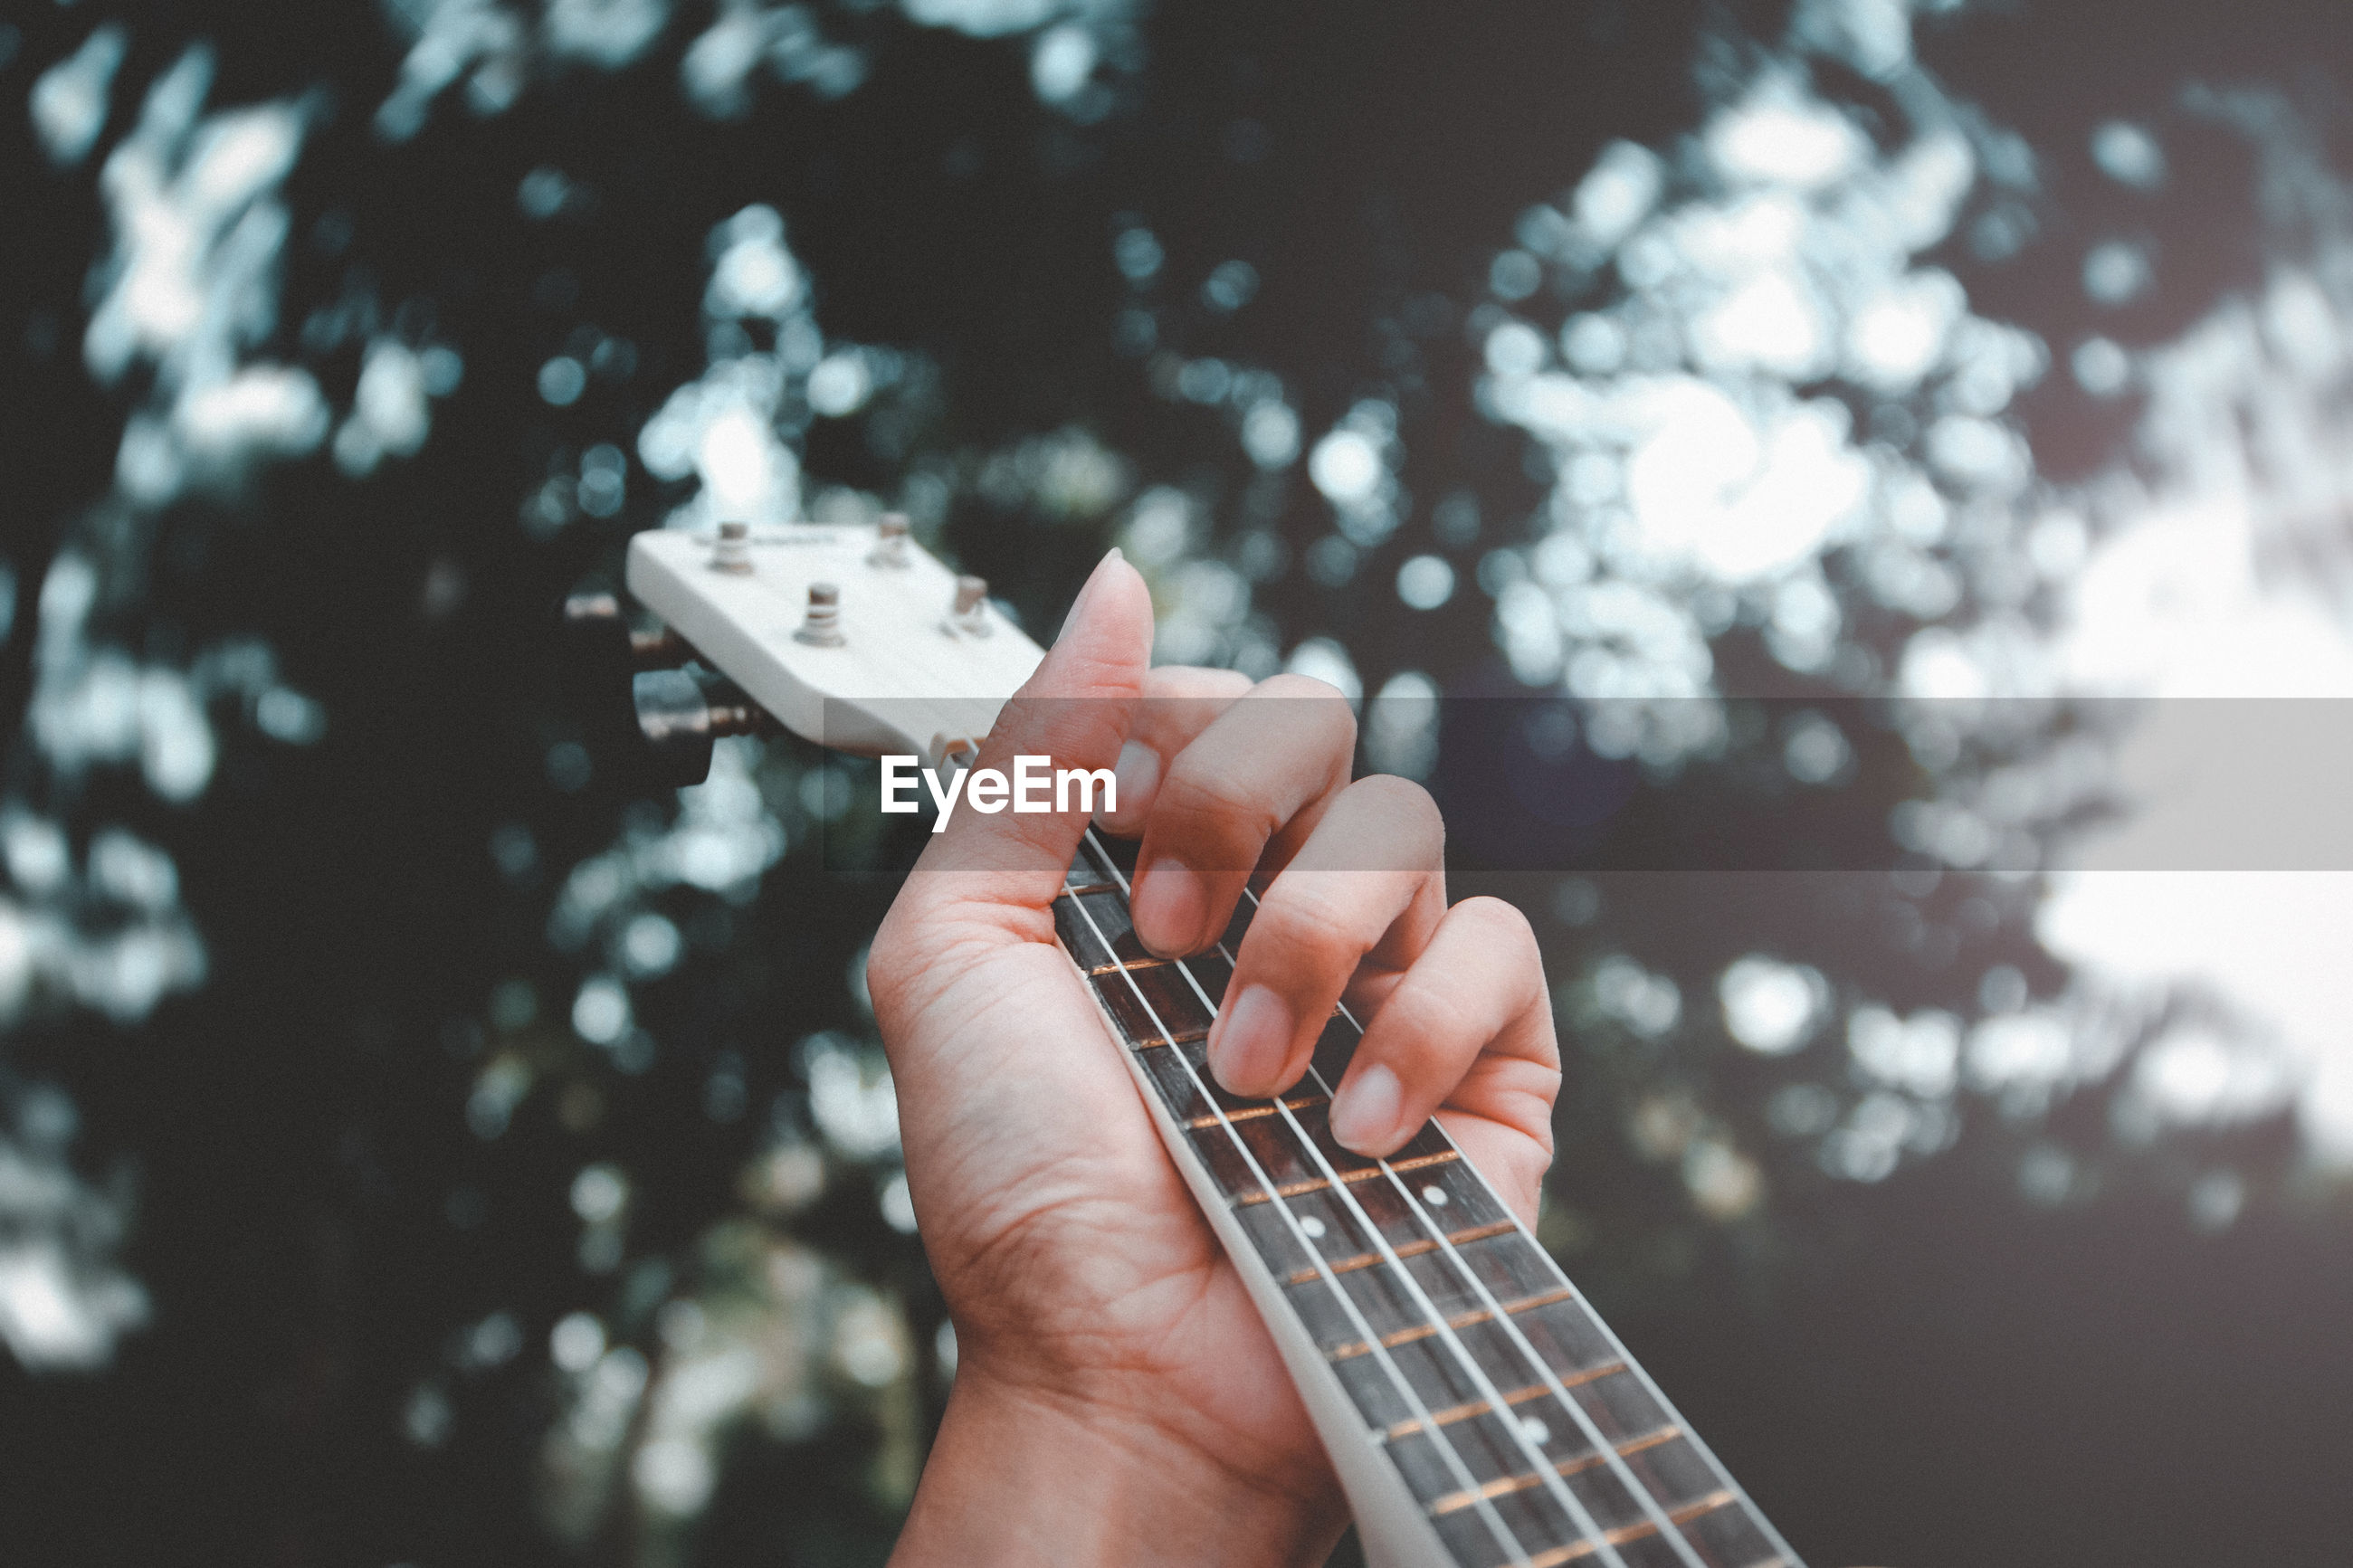 Close-up of hand playing guitar against tree